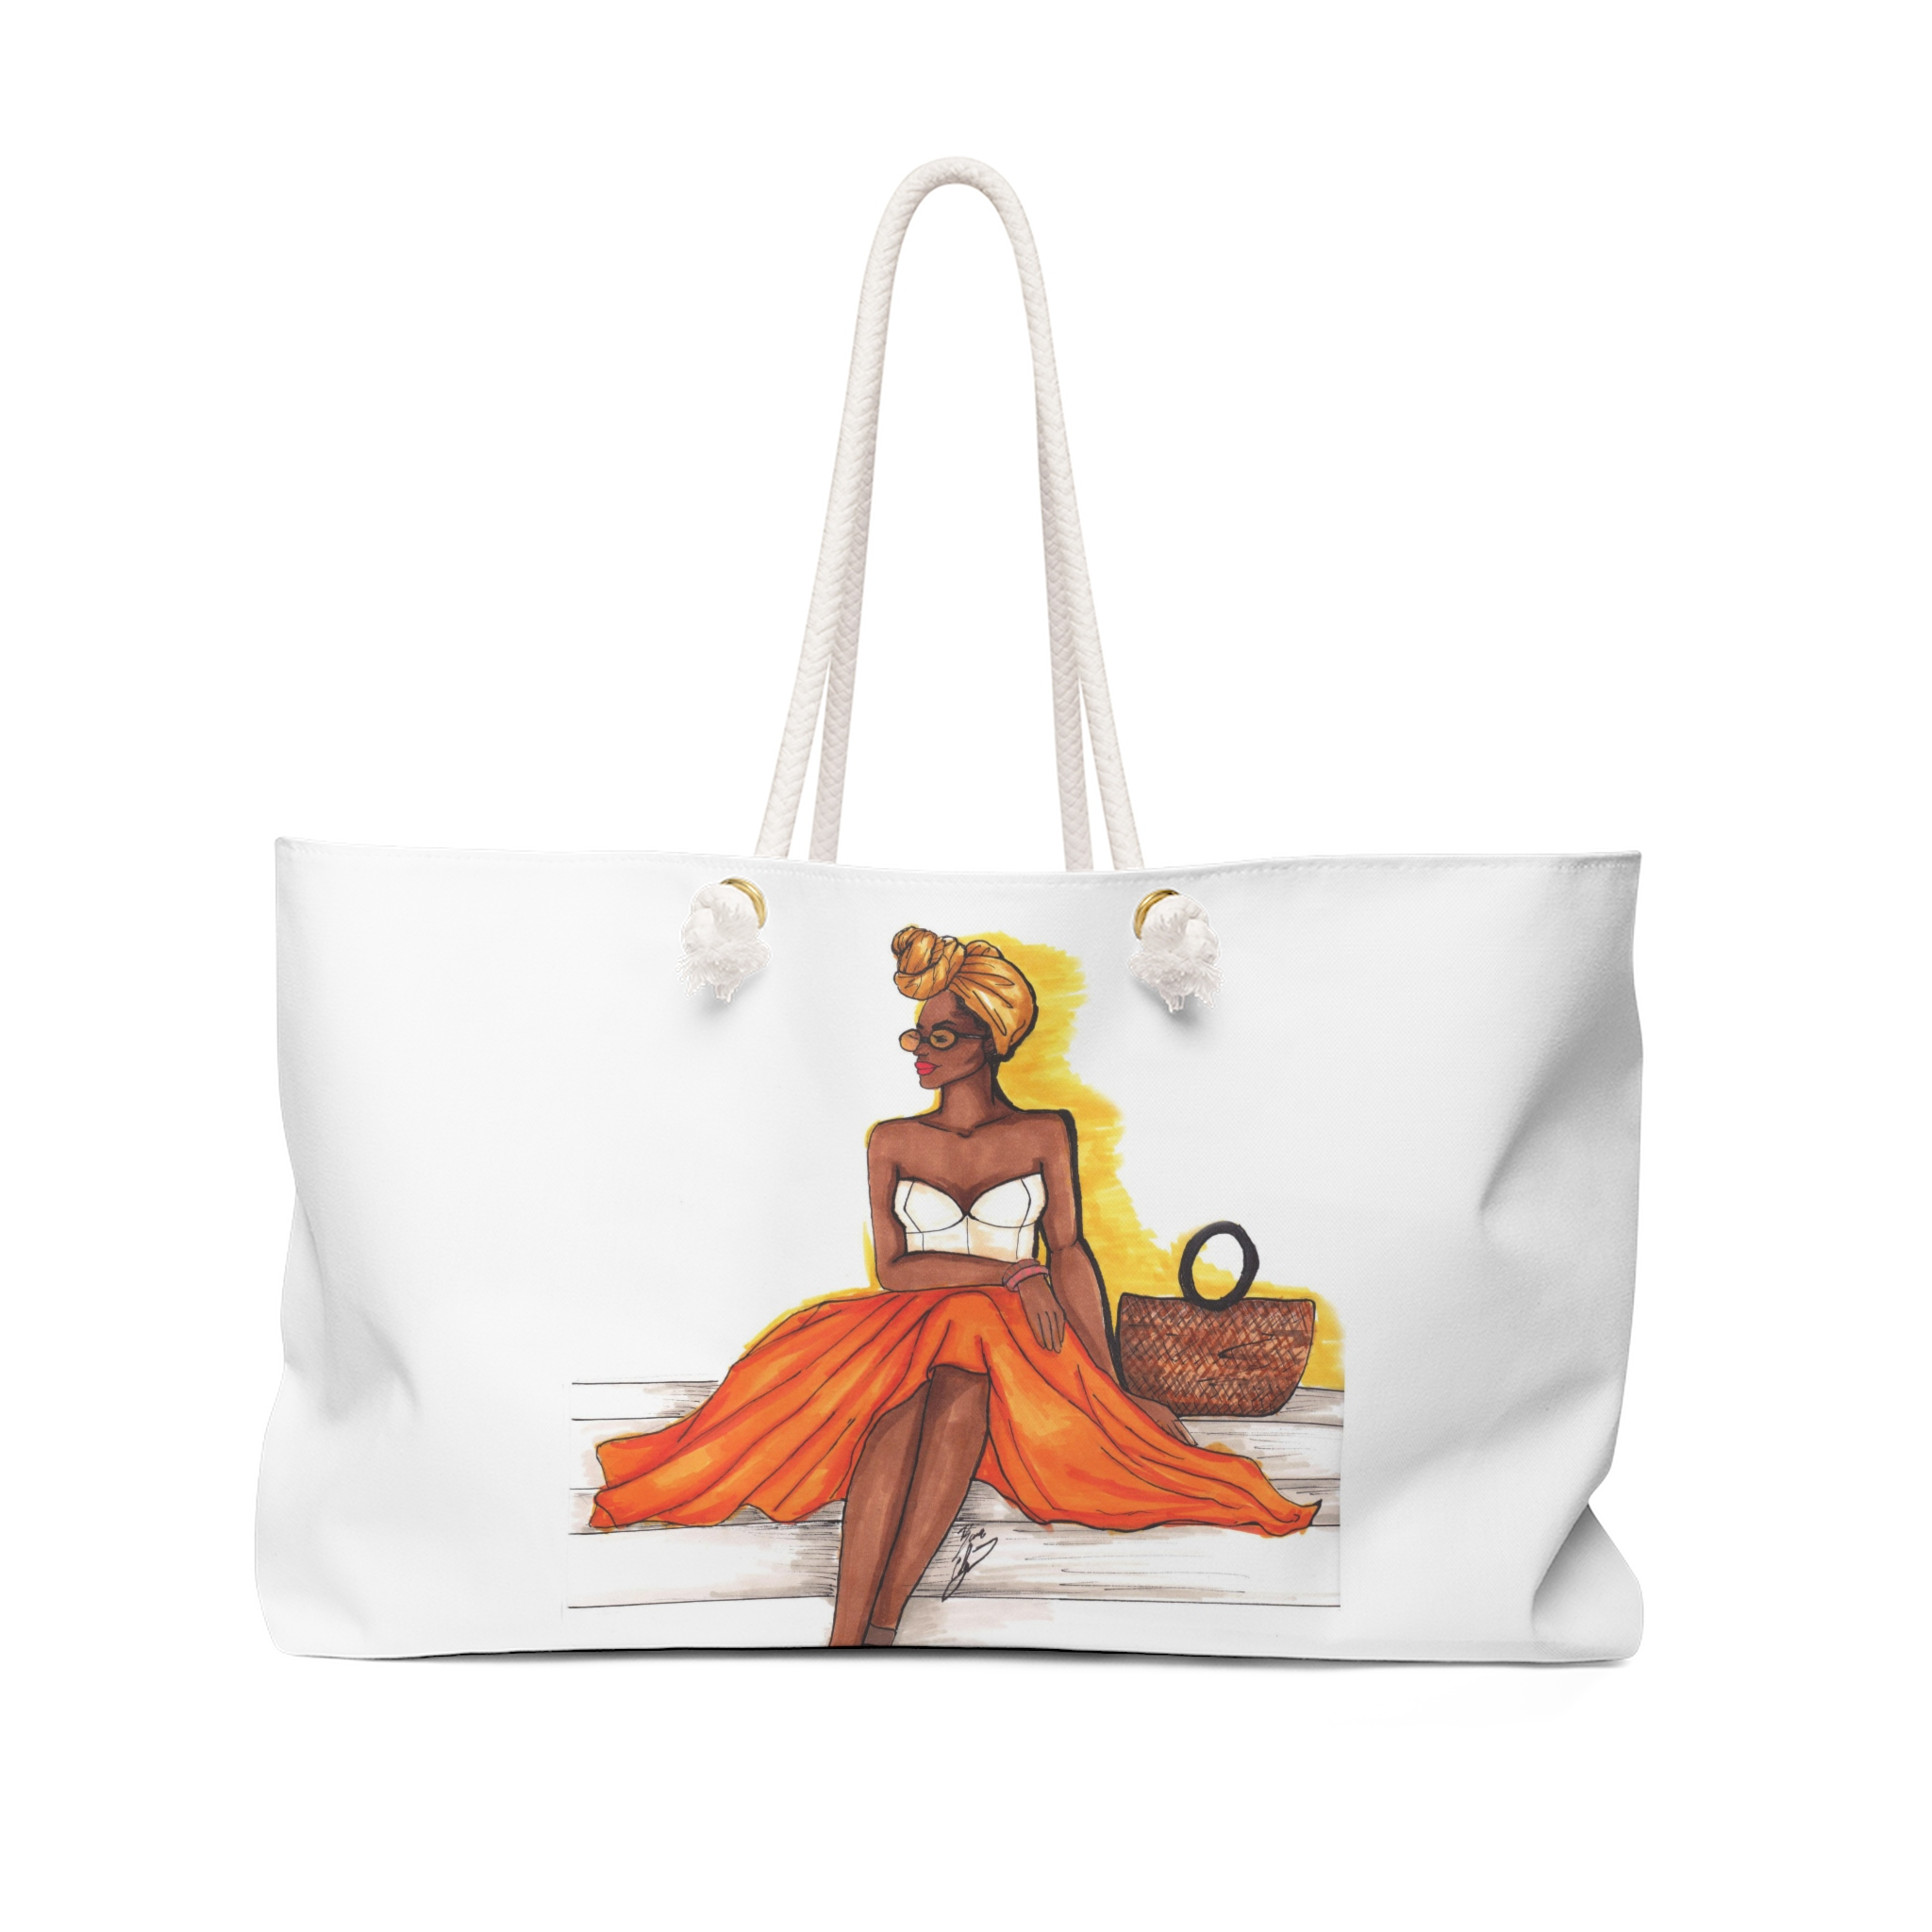 Tote Bags - Shop Stylish Tote and Weekender Bags